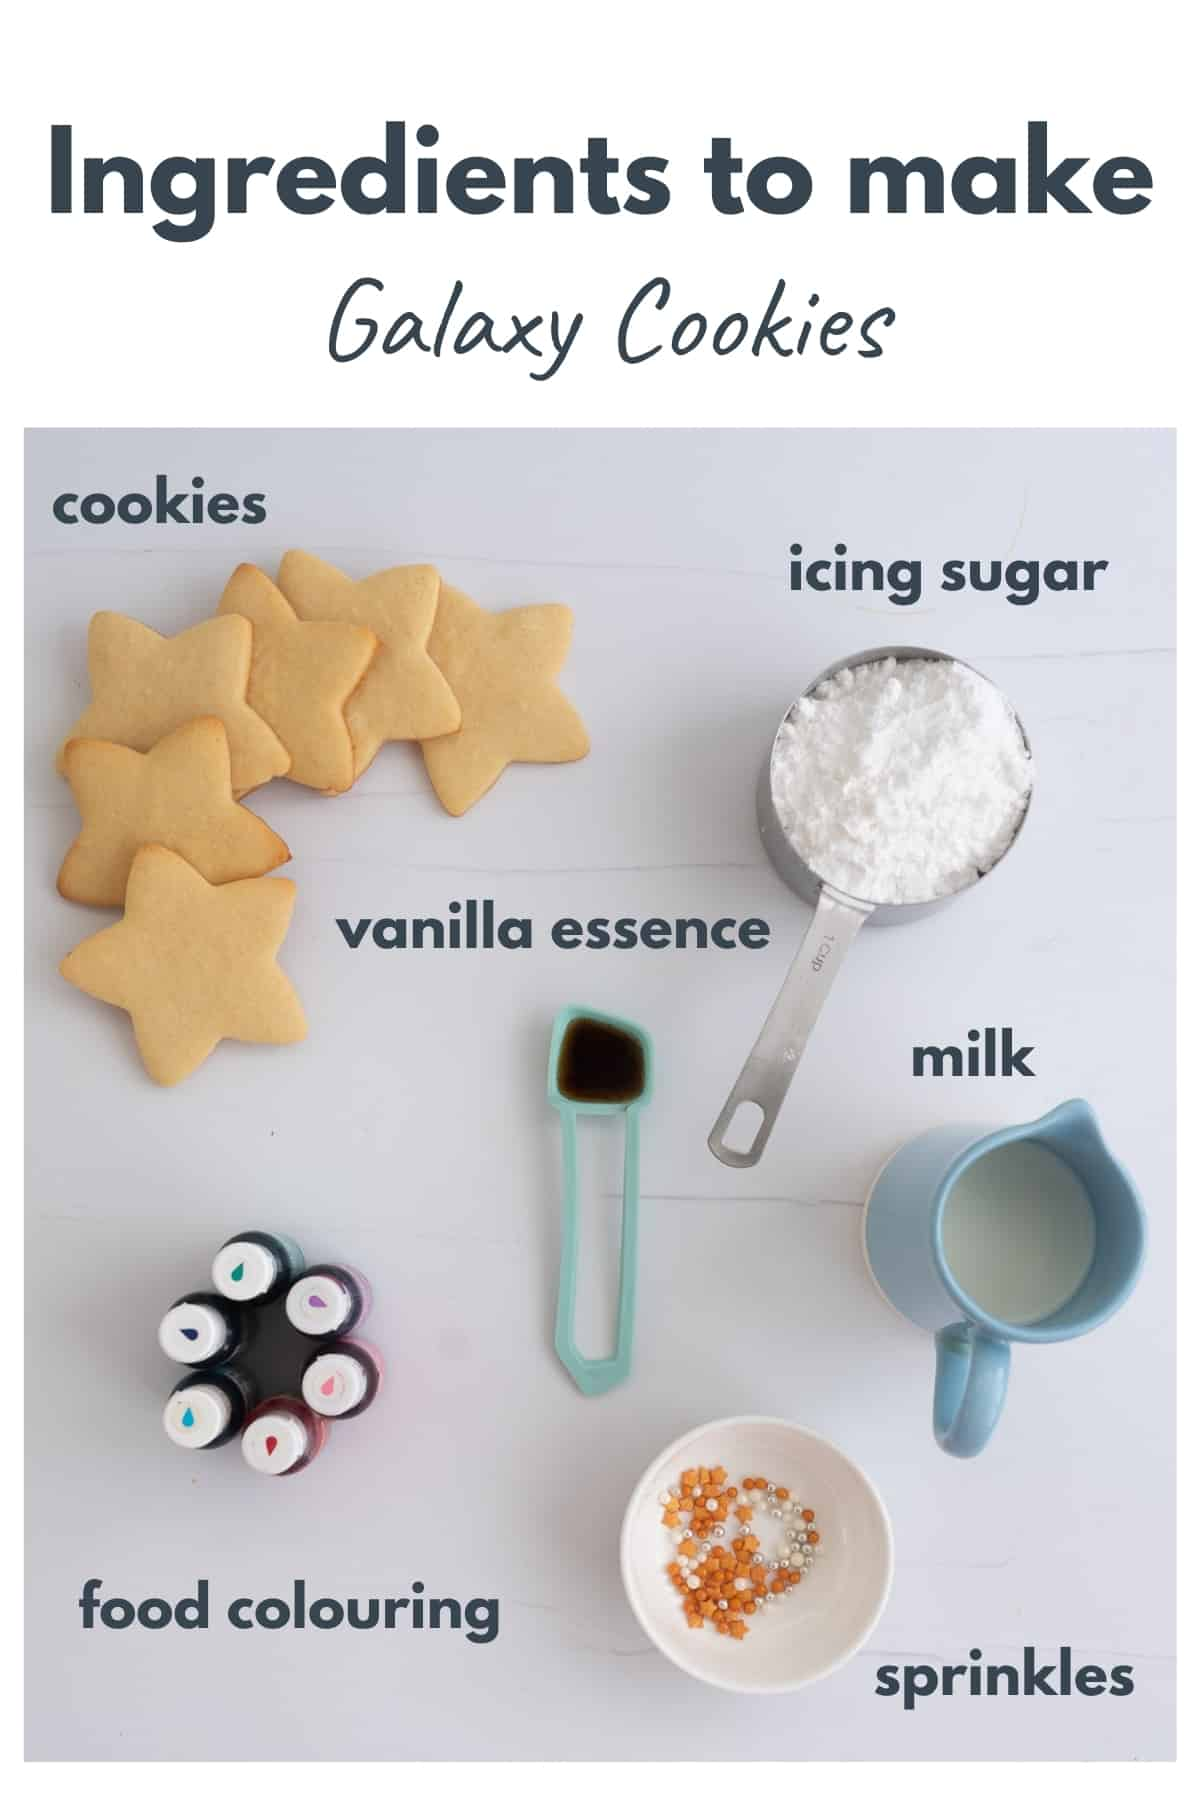 The ingredients to make galaxy cookies laid out on a bench top with text overlay.